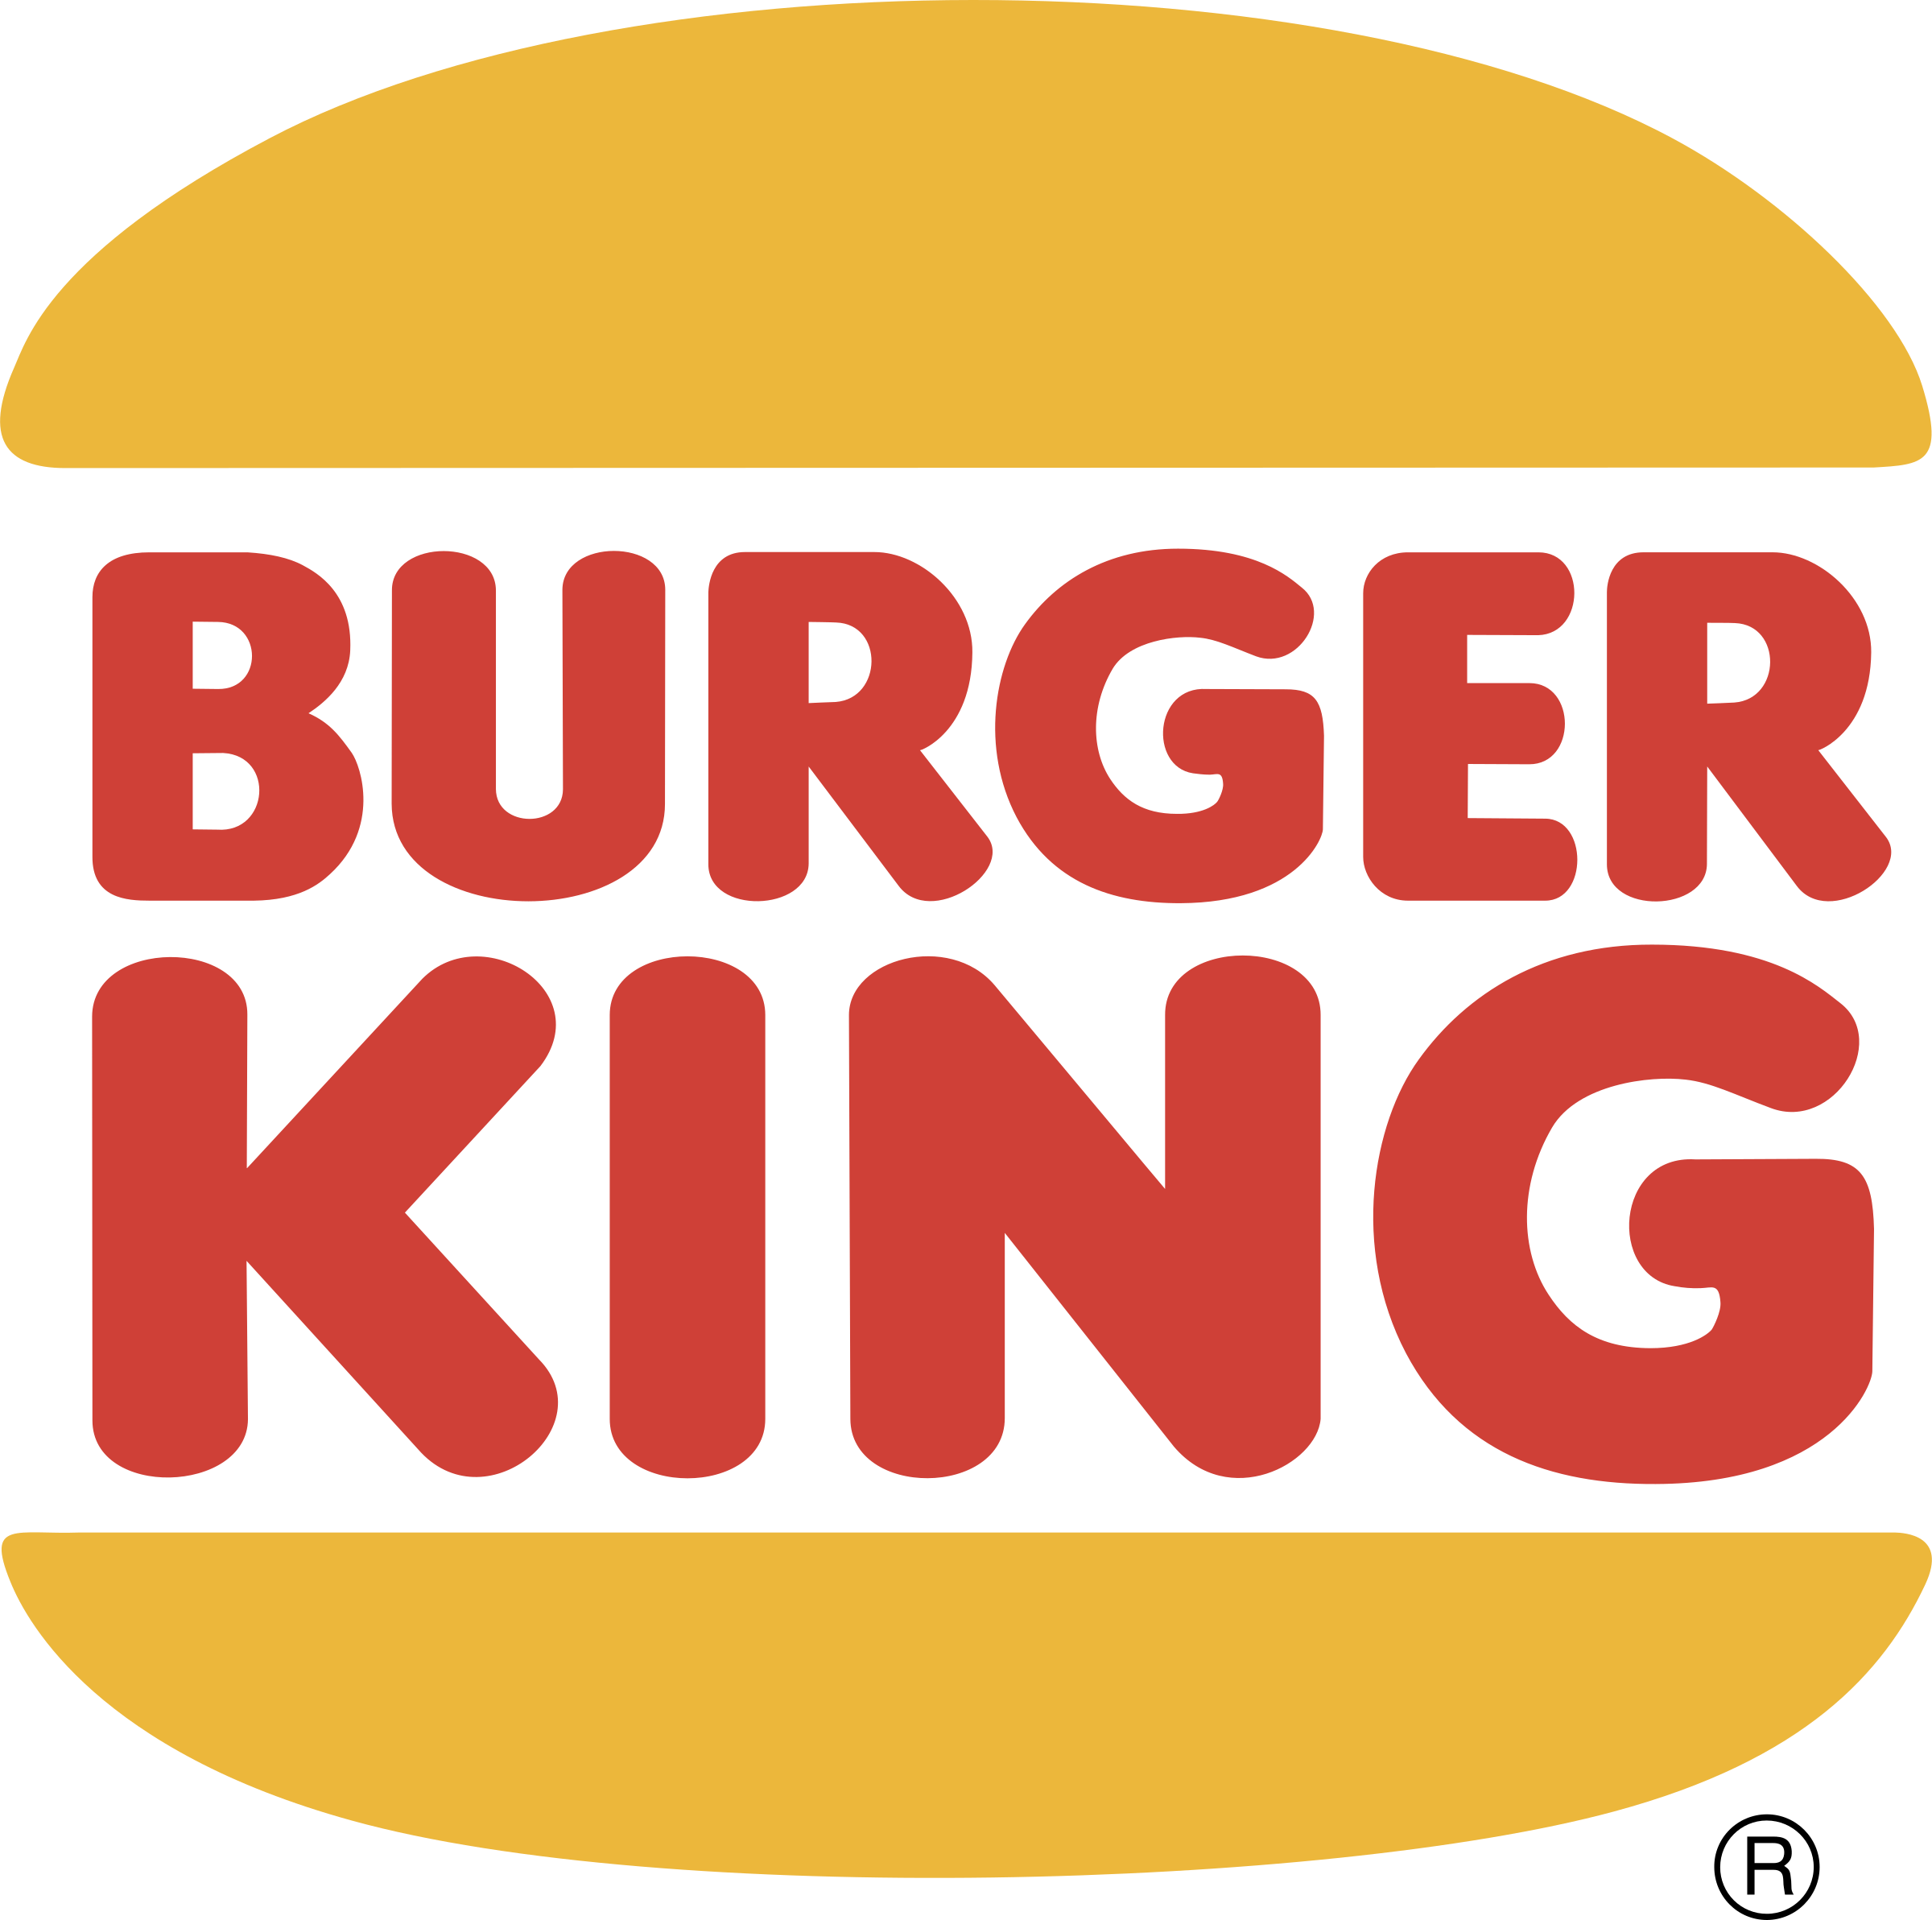 Burger King 2 Logo PNG Transparent & SVG Vector.